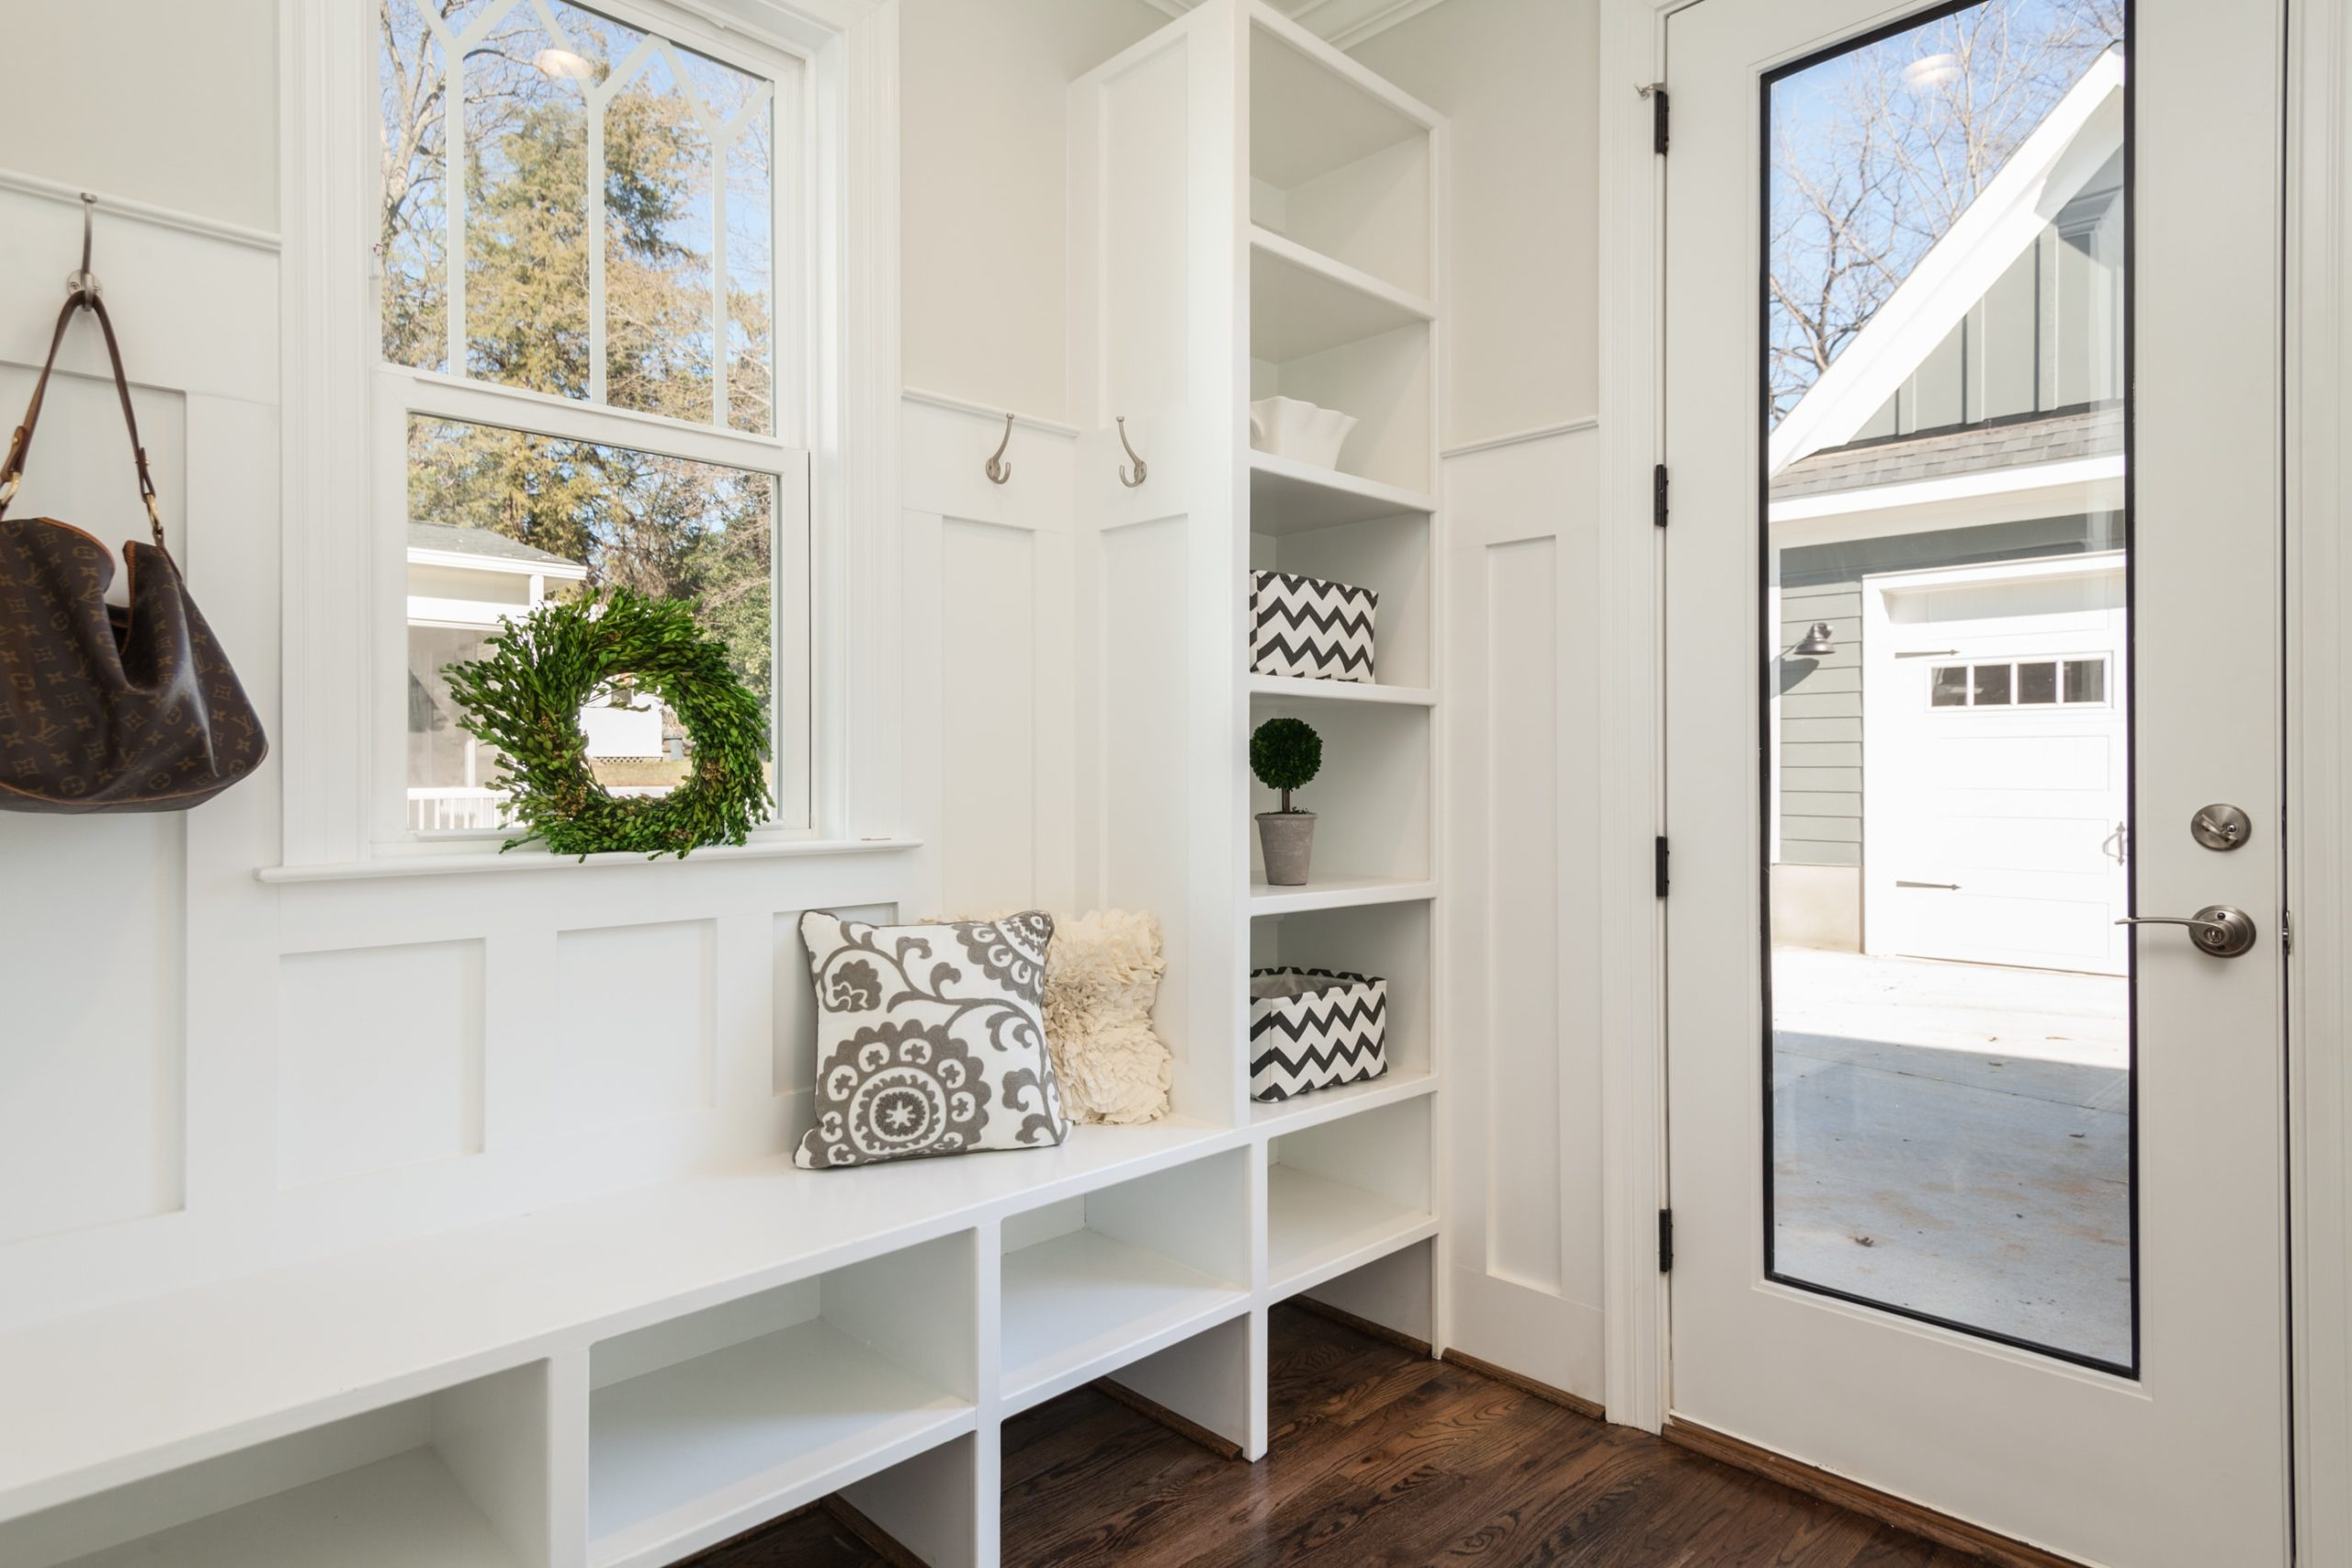 Newly renovated entranceway in a home